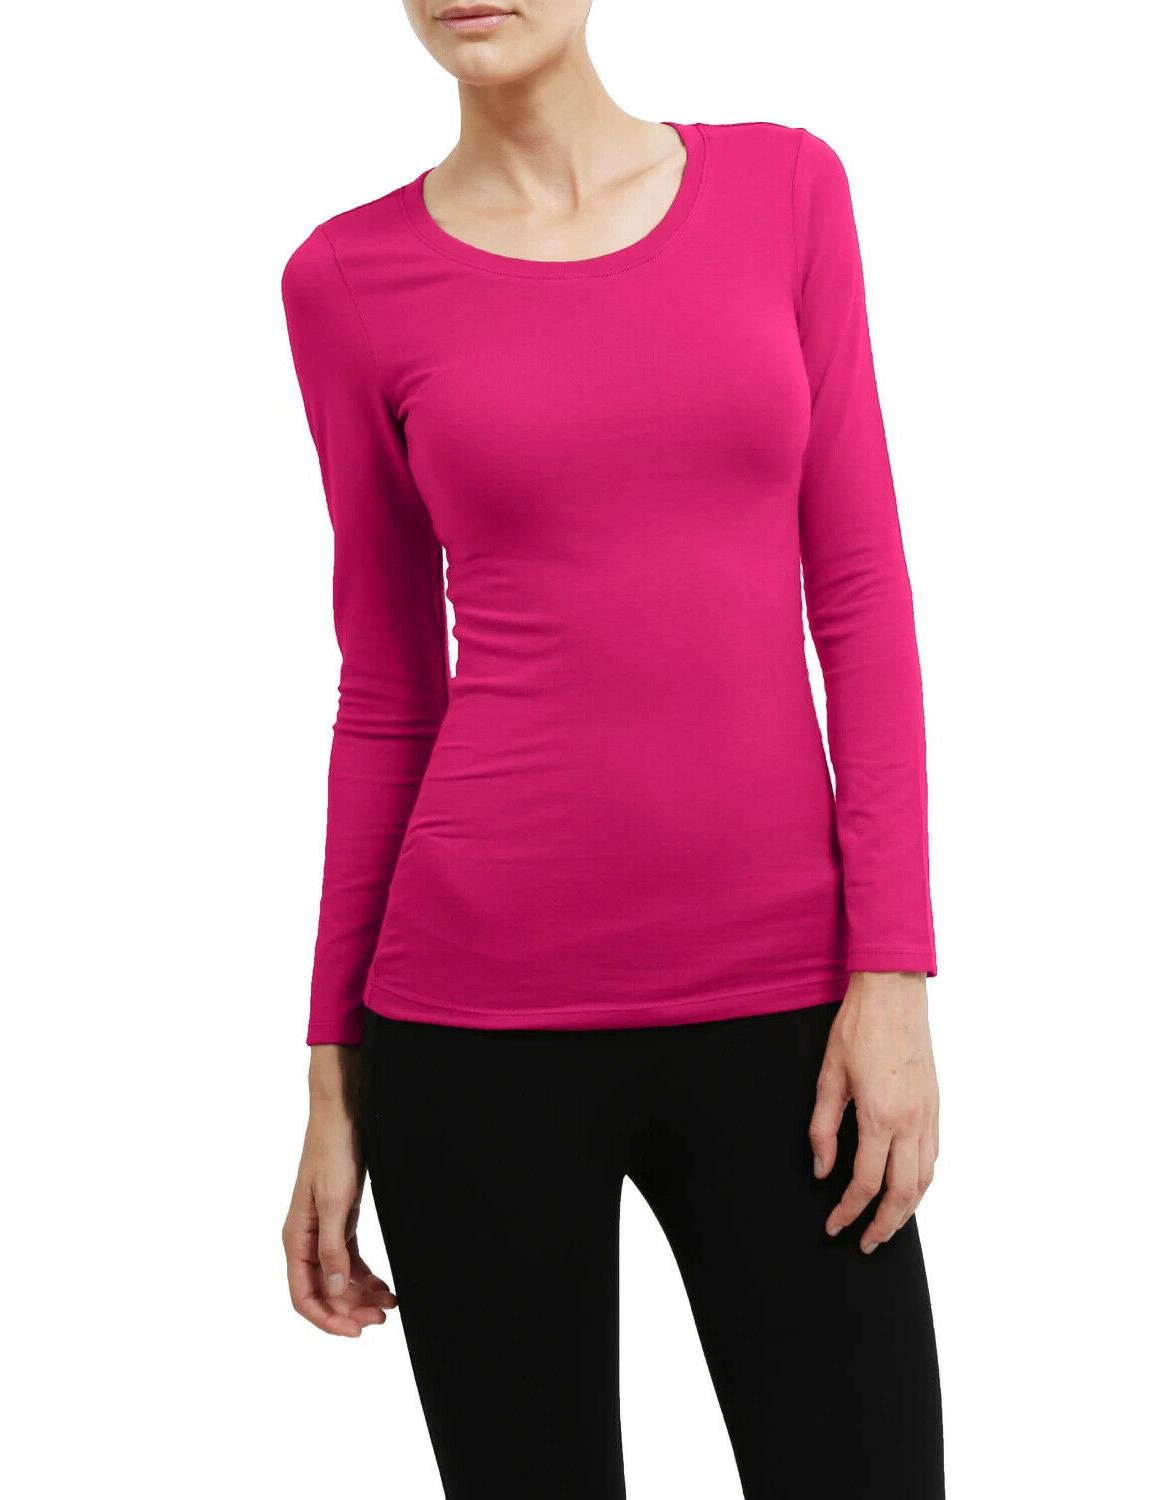 Women's Long Top Slim Fit Stretch Crew T-shirt